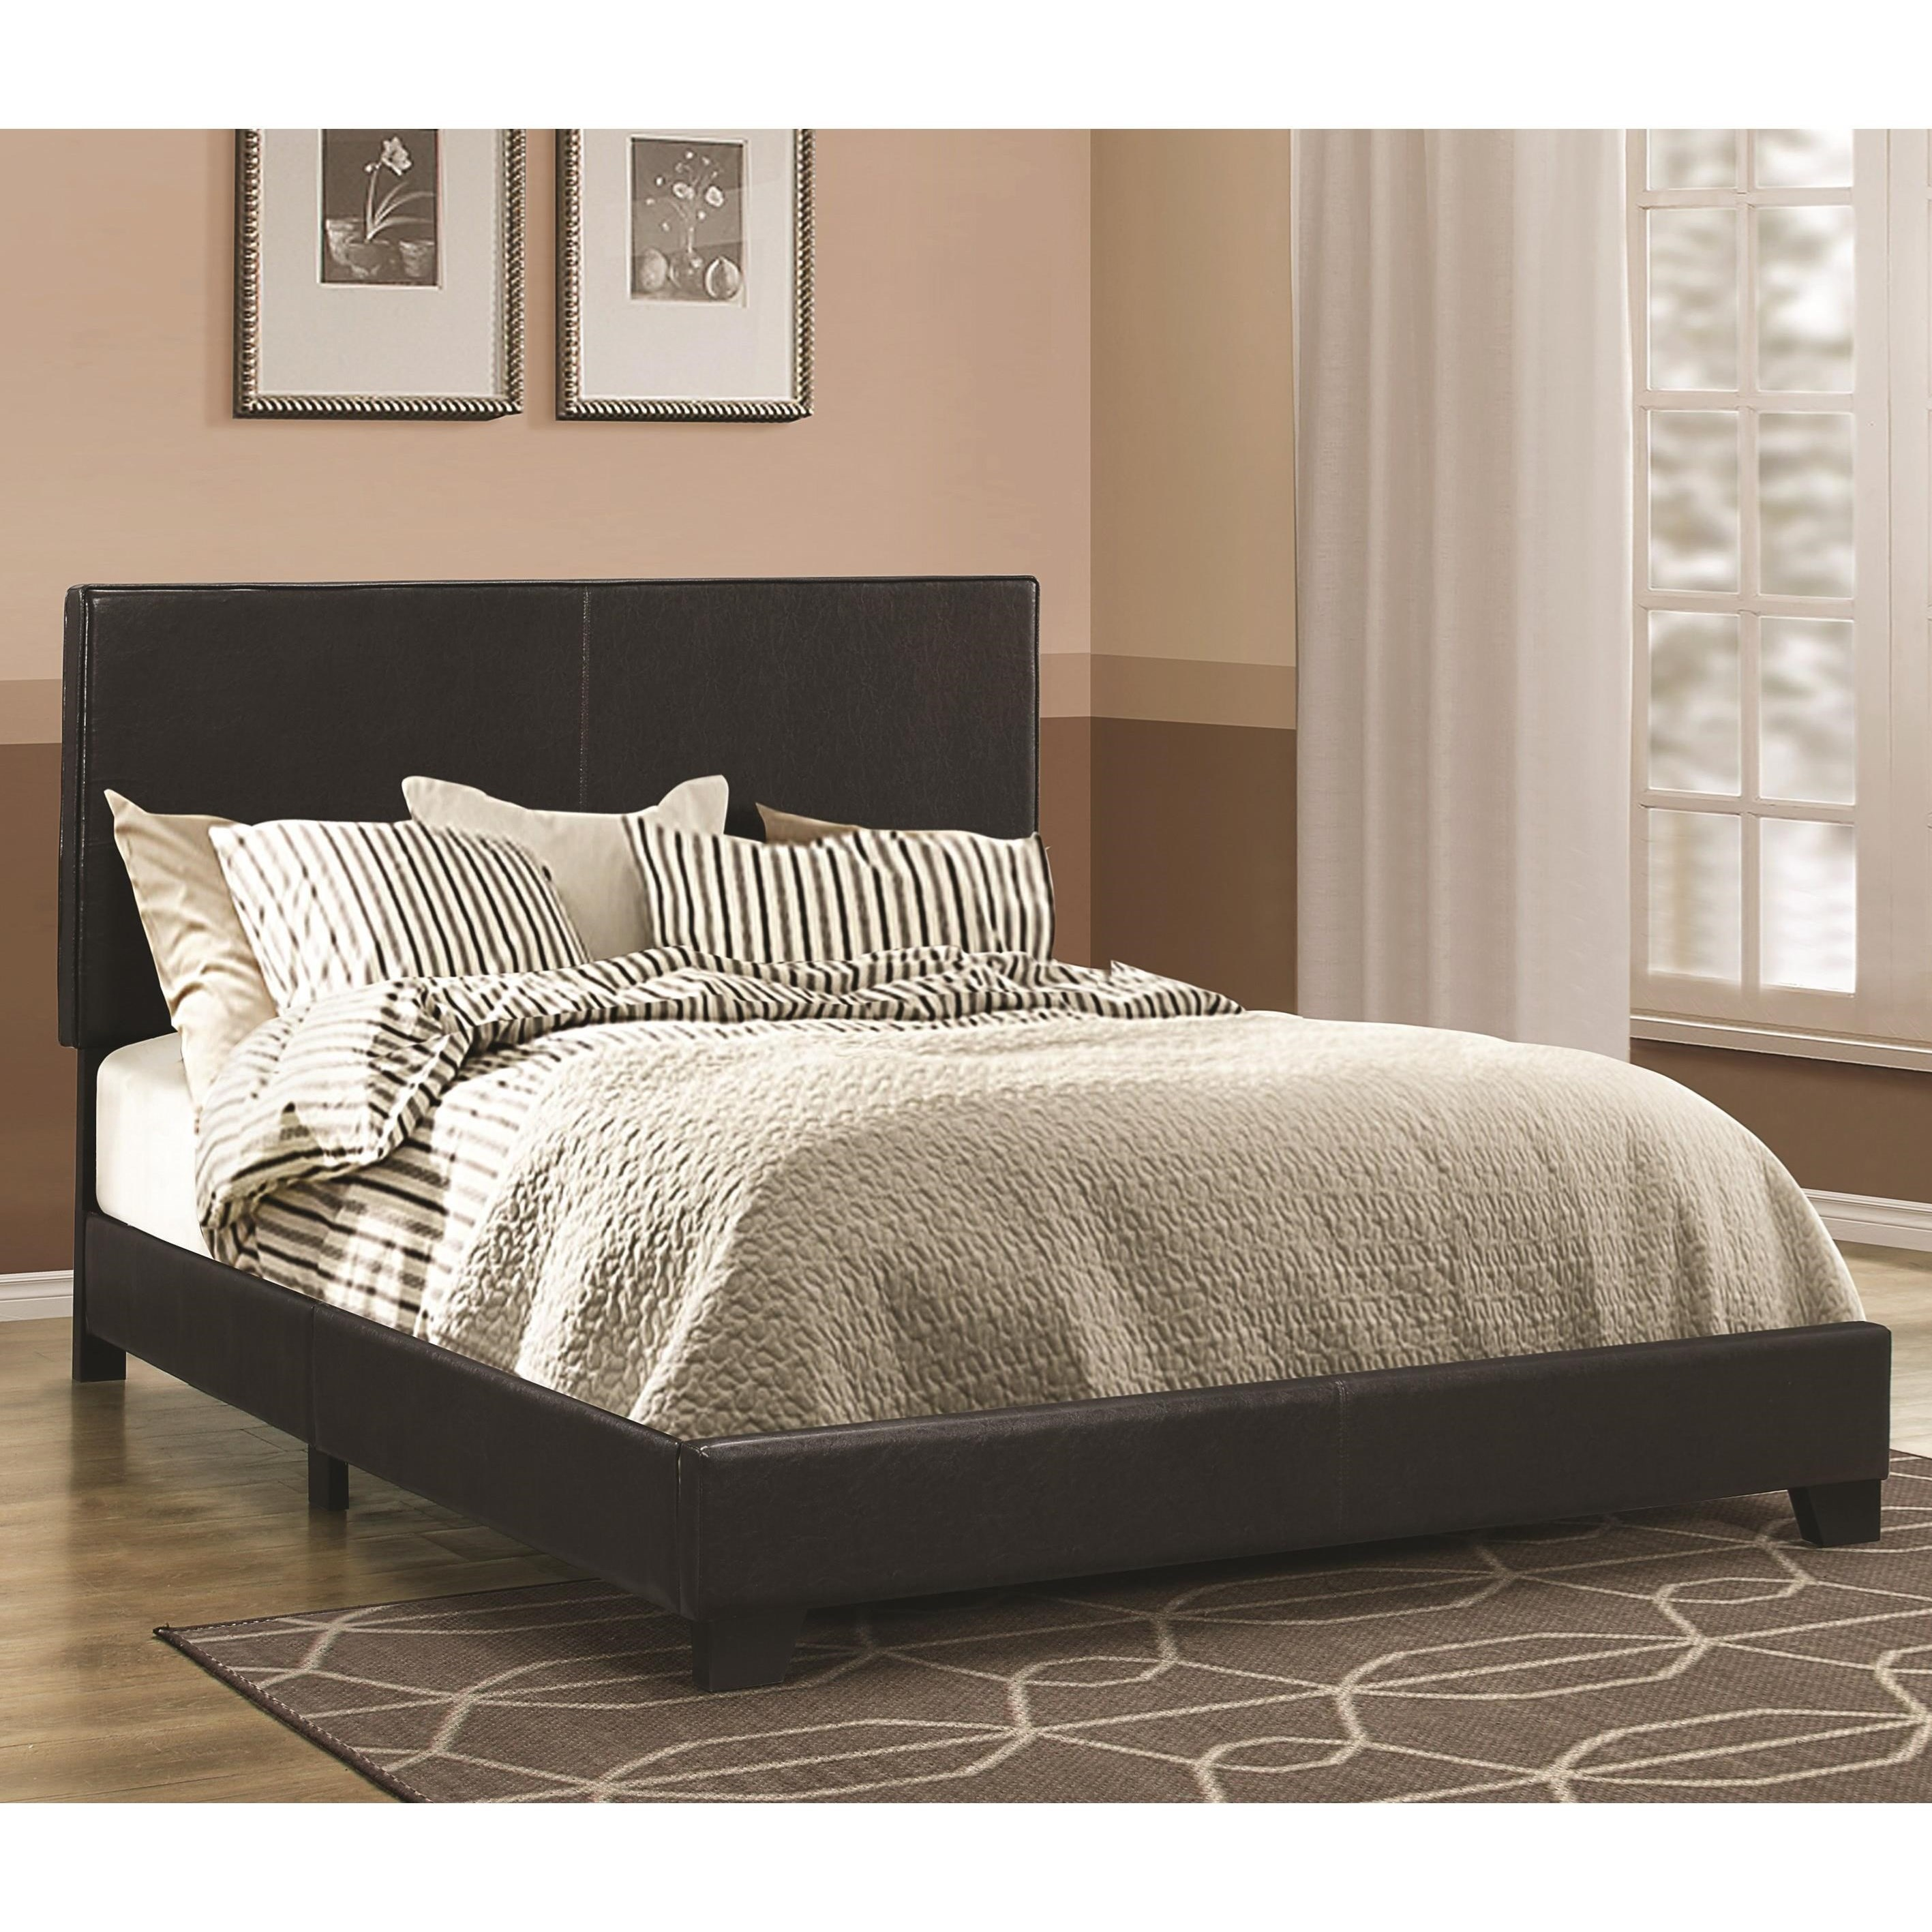 Dorian Black Queen Bed by Coaster at Carolina Direct